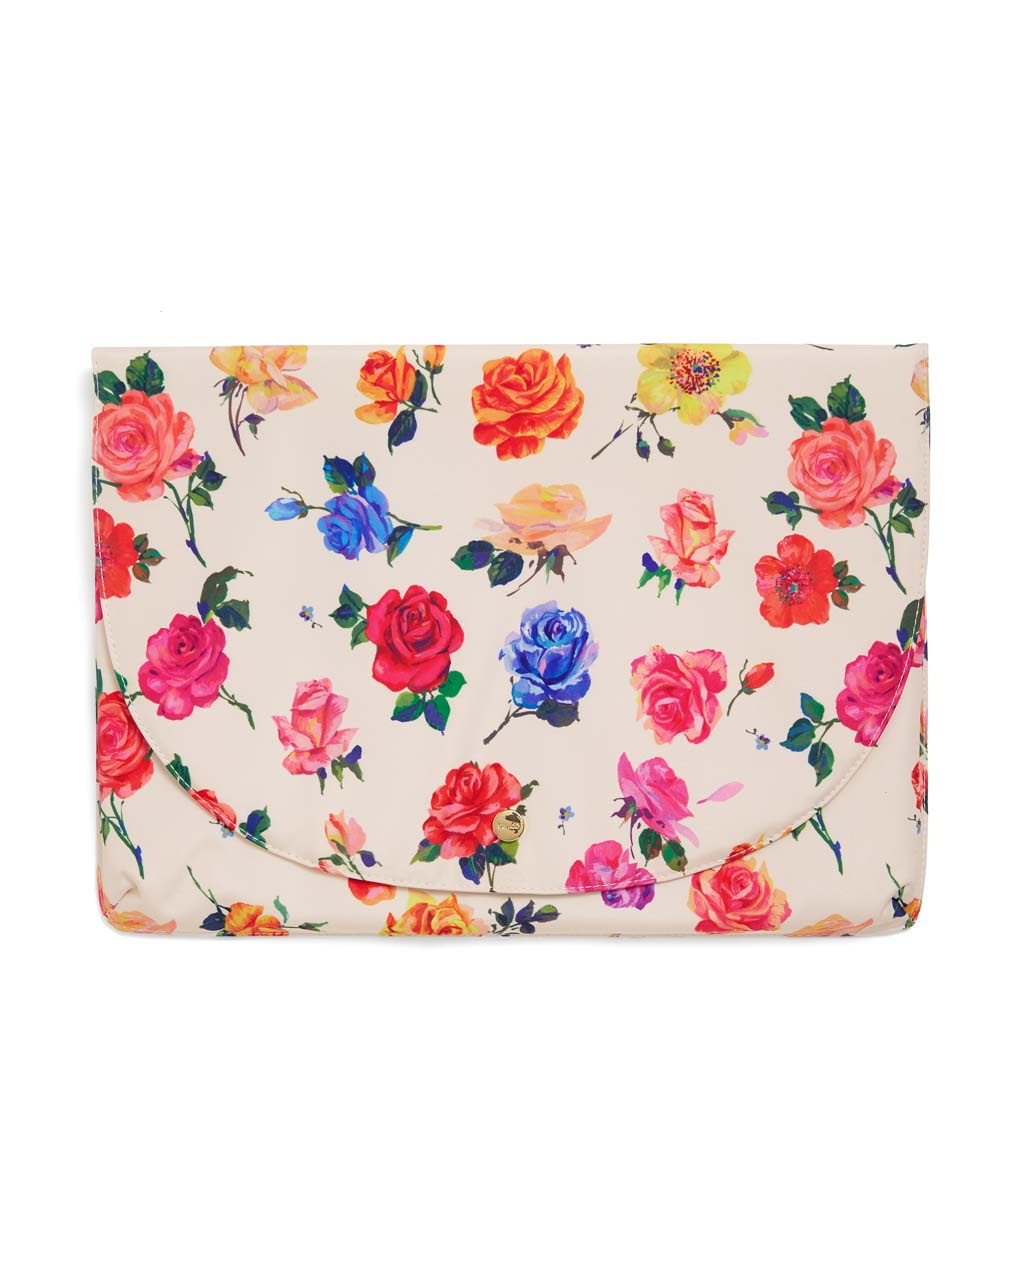 This Logged On Laptop Sleeve comes in colorful floral pattern designed by Helen Dealtry.